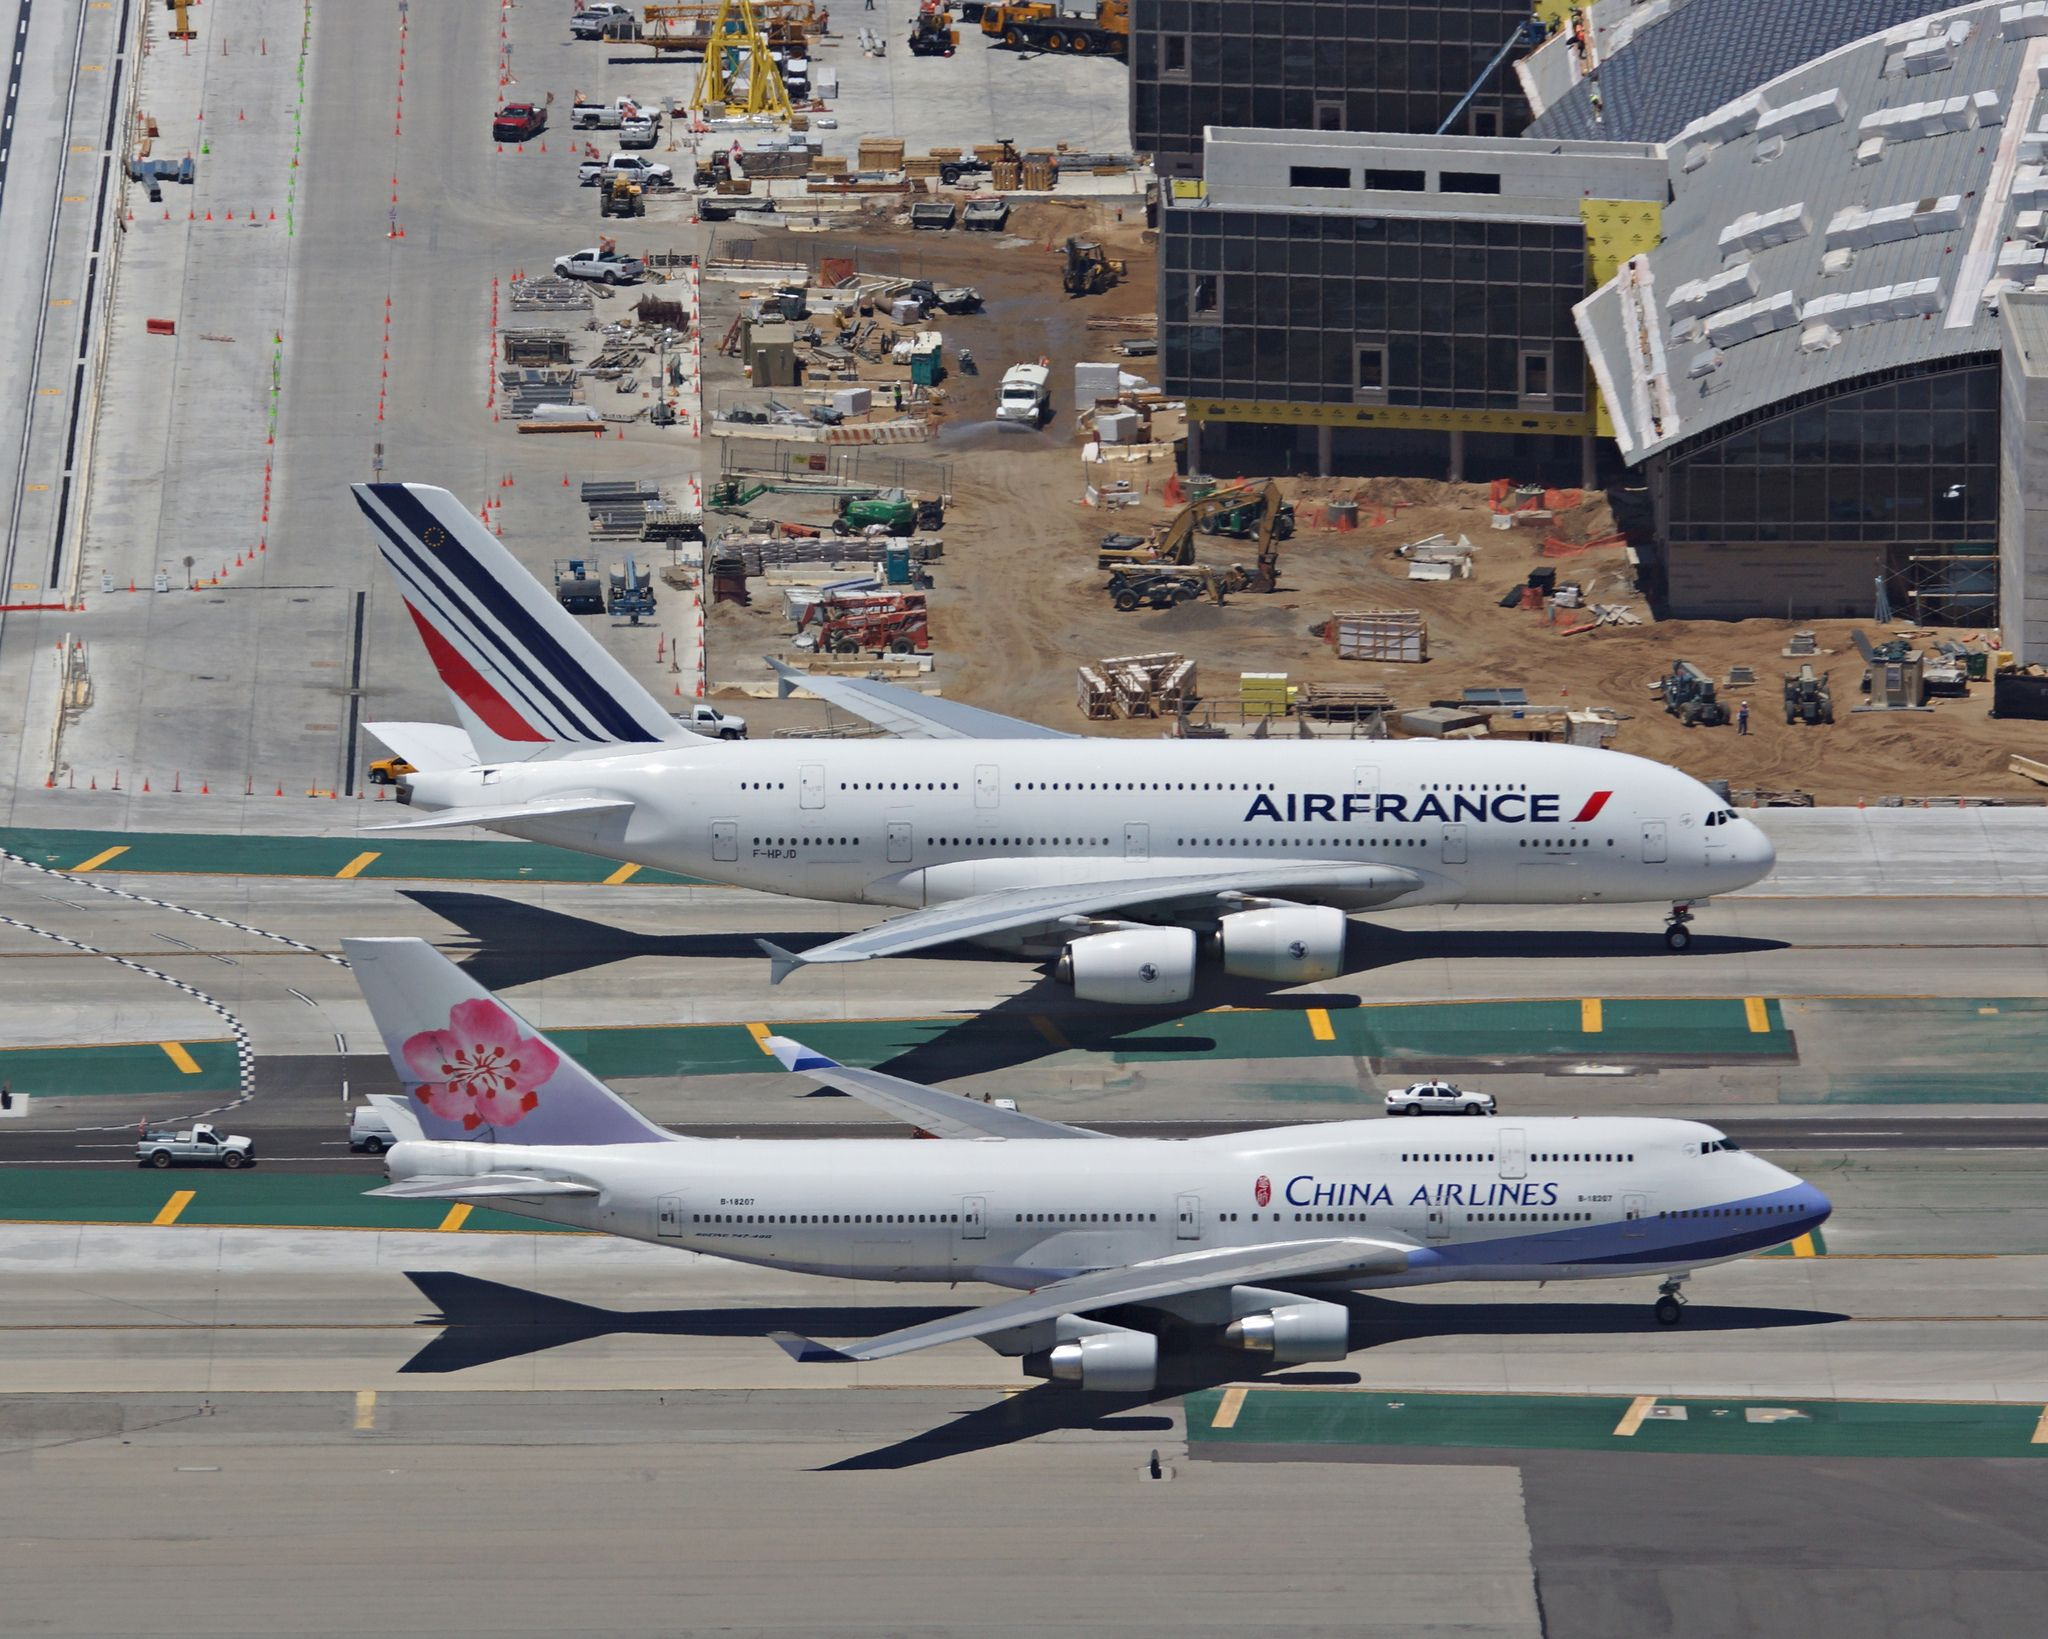 B747400 & A380800 Boeing 747 400, Air france and